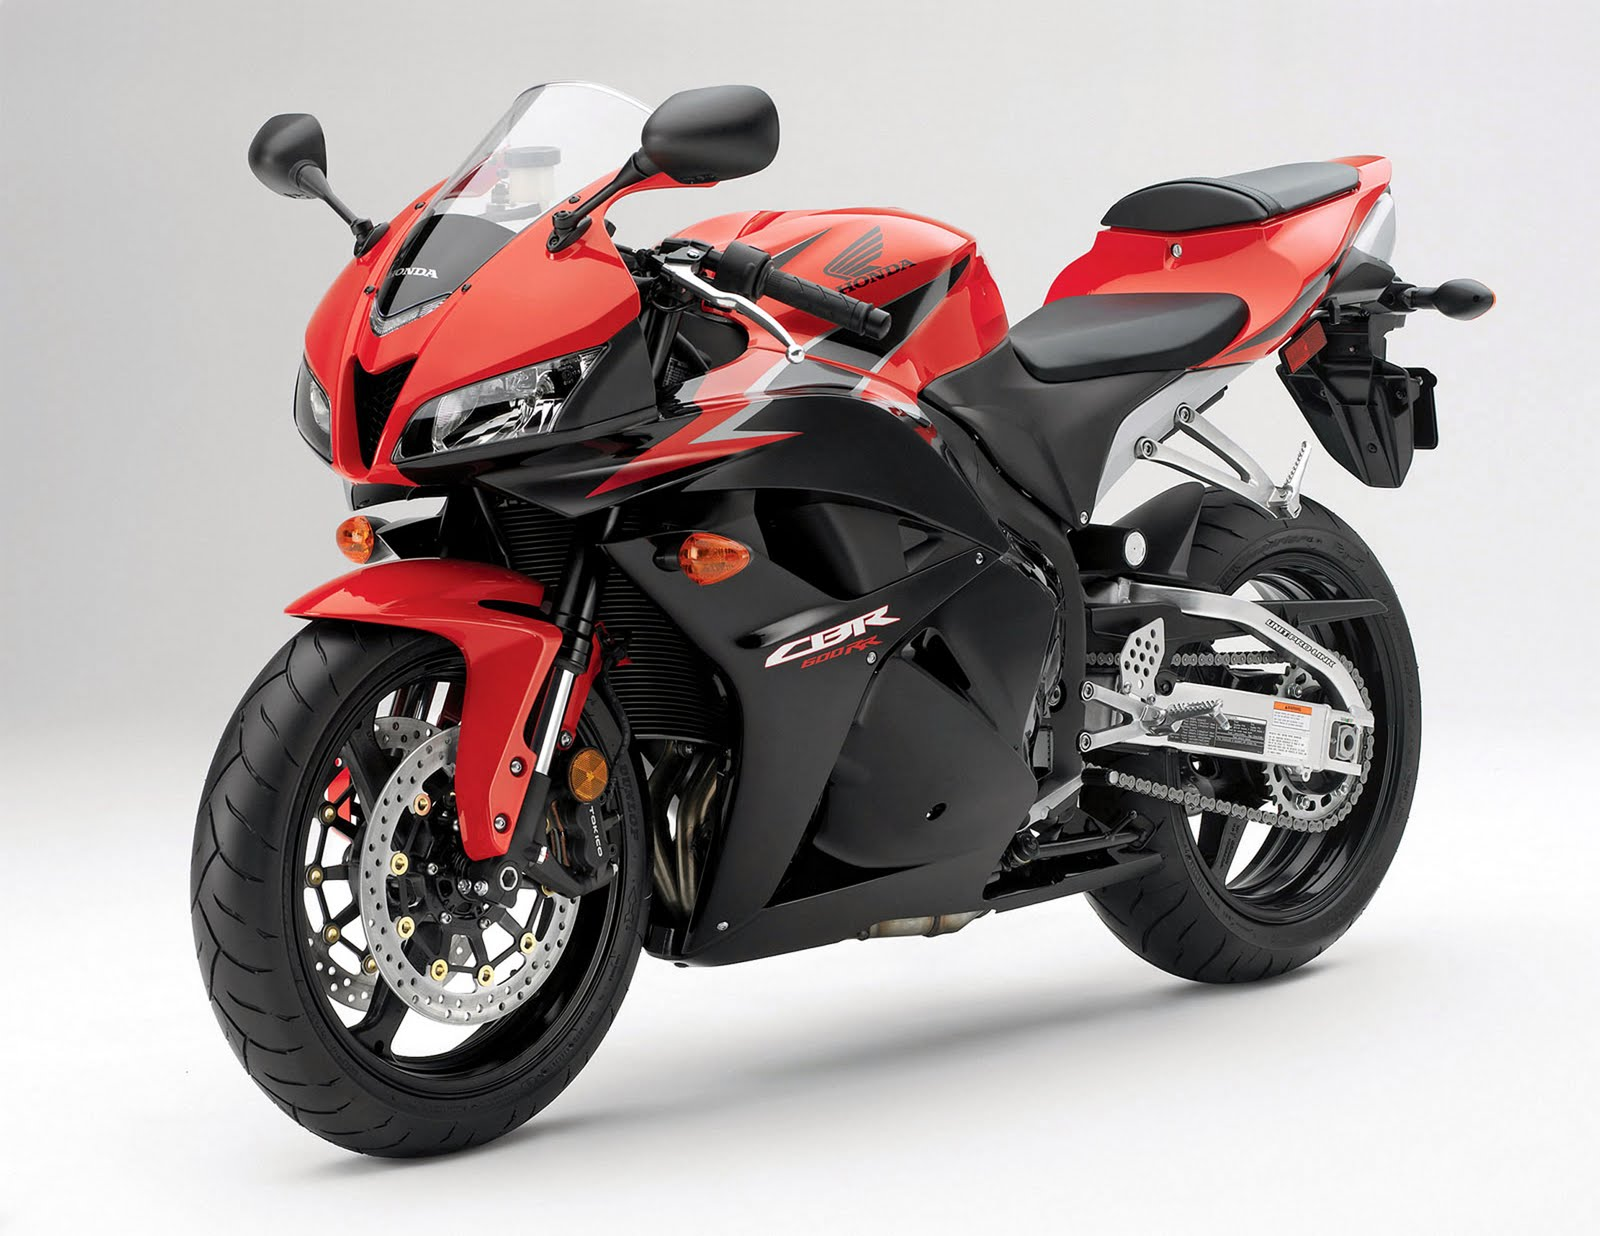 Honda Cbr600rr Phoenix For Sale Motorcycle Pictures Motorcycle